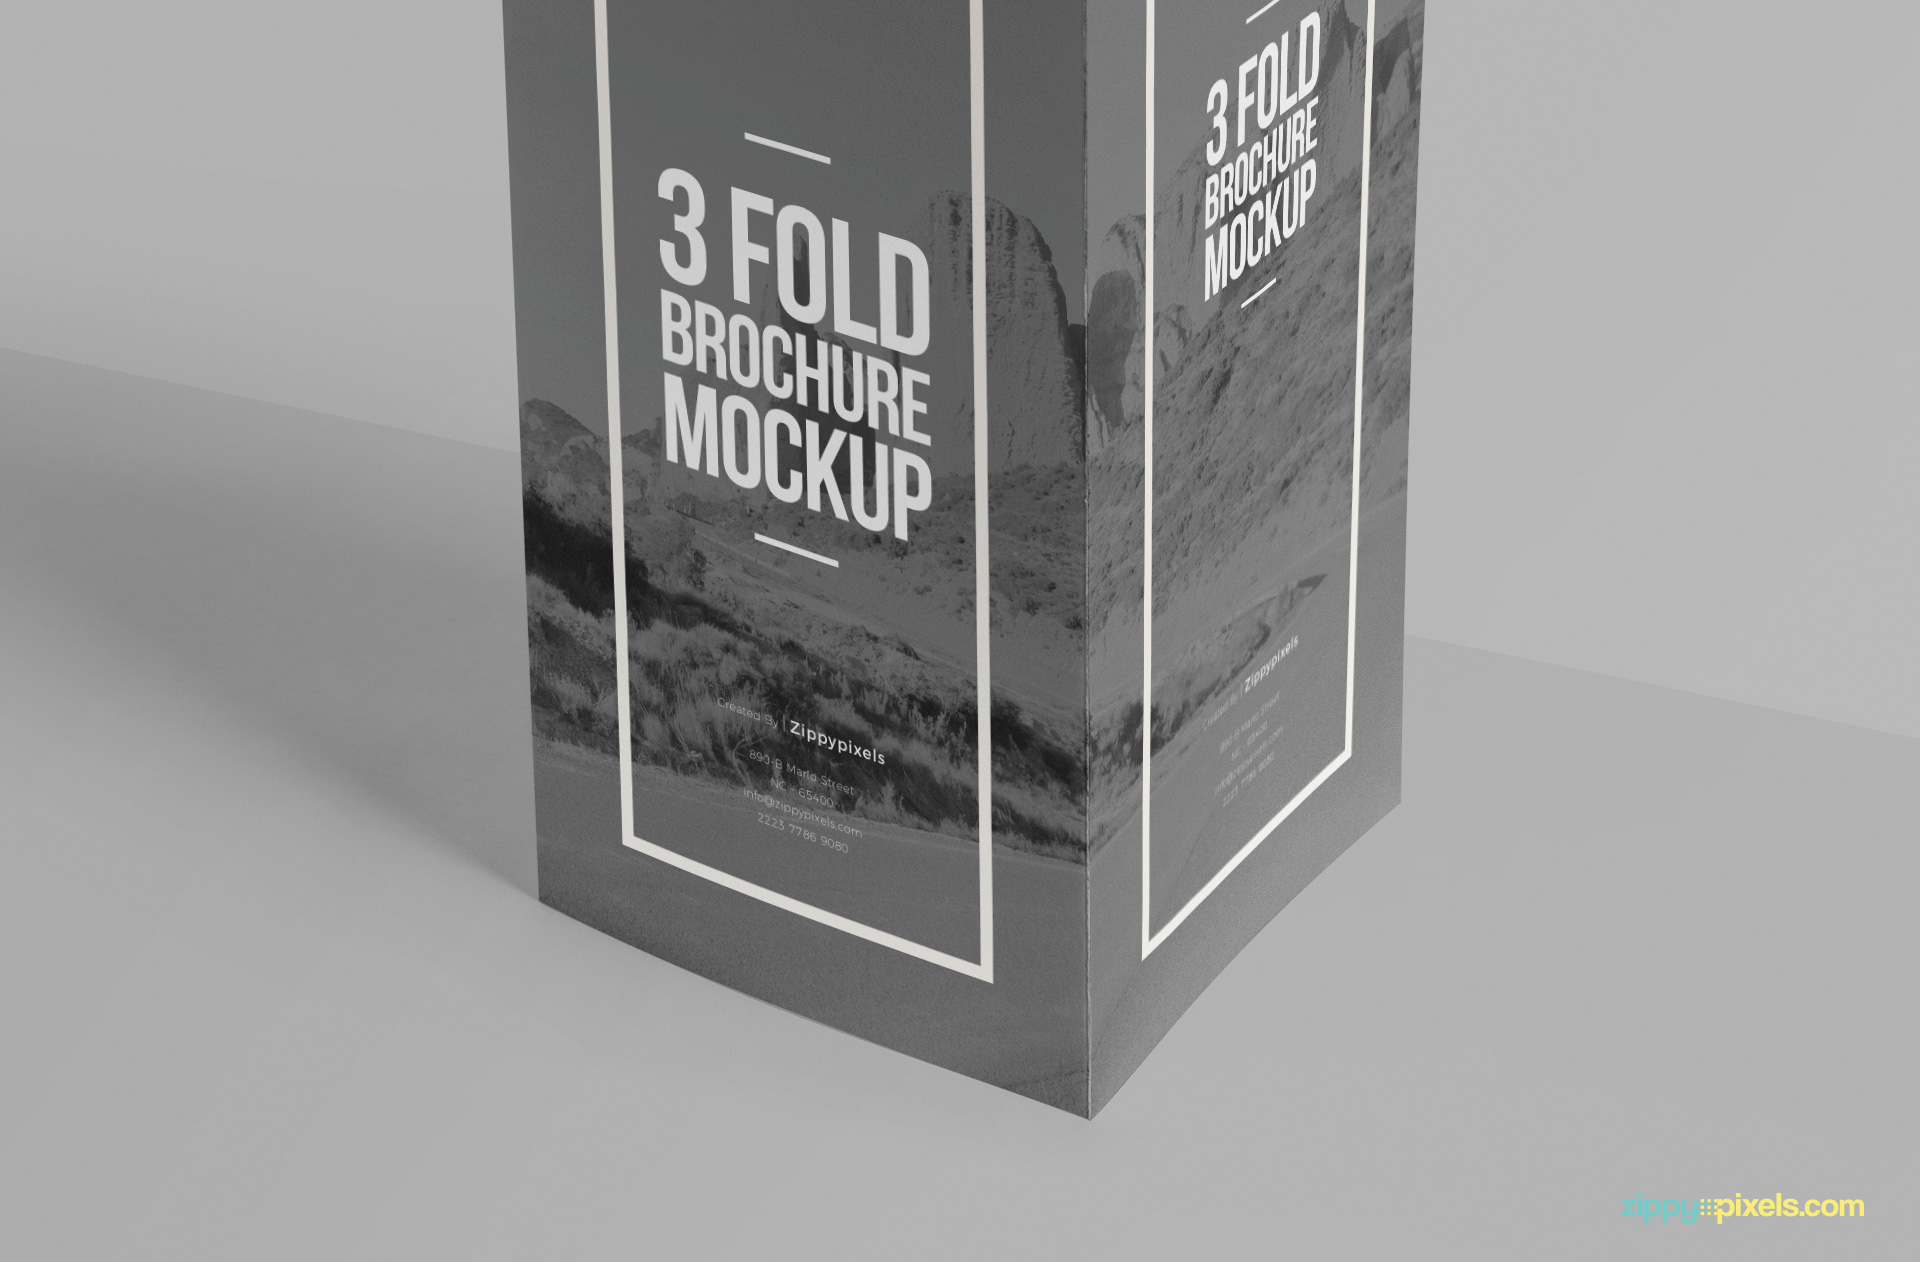 You can change front design of this 3 fold brochure.